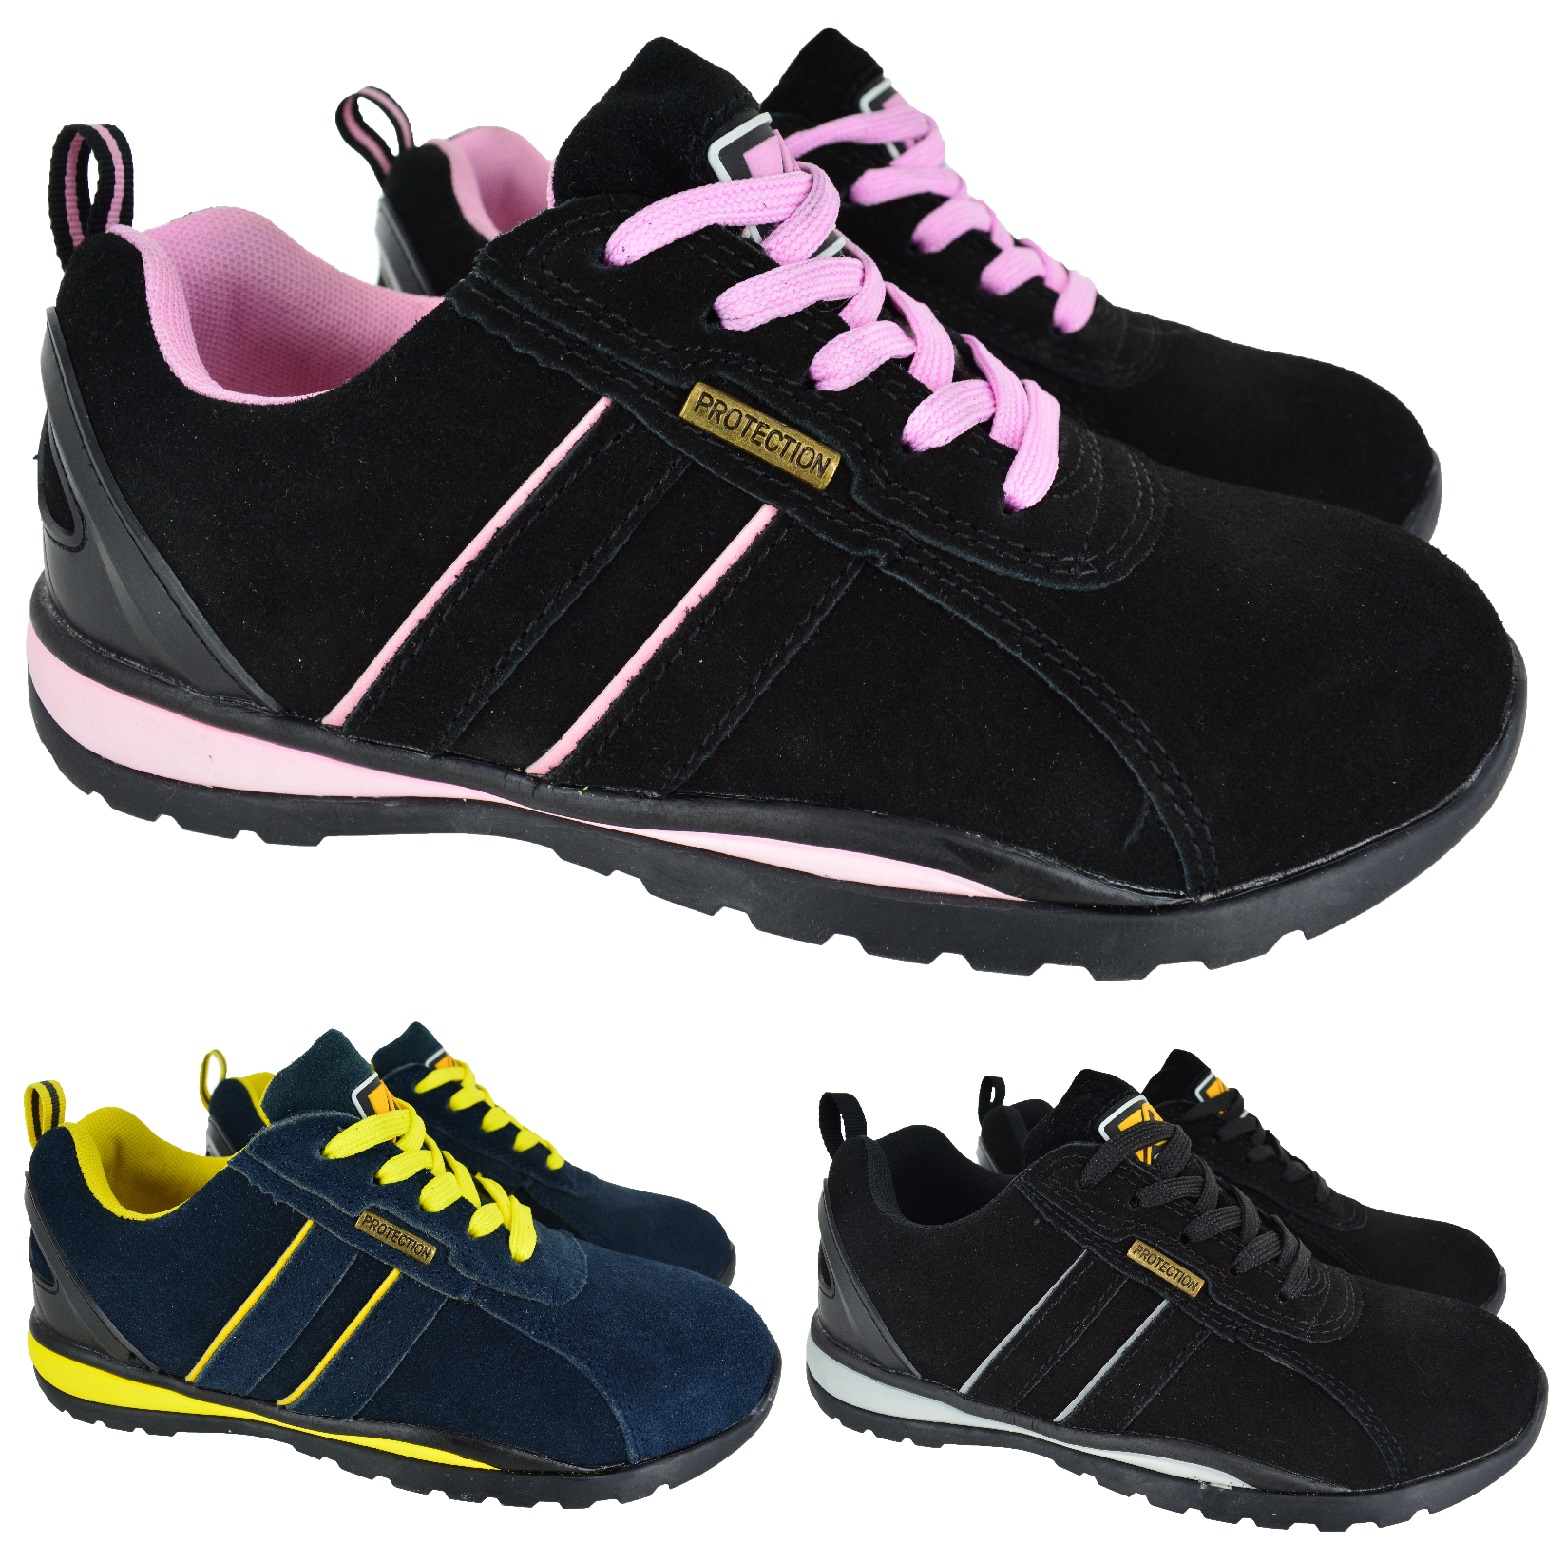 womens leather safety work steel toe cap hiking